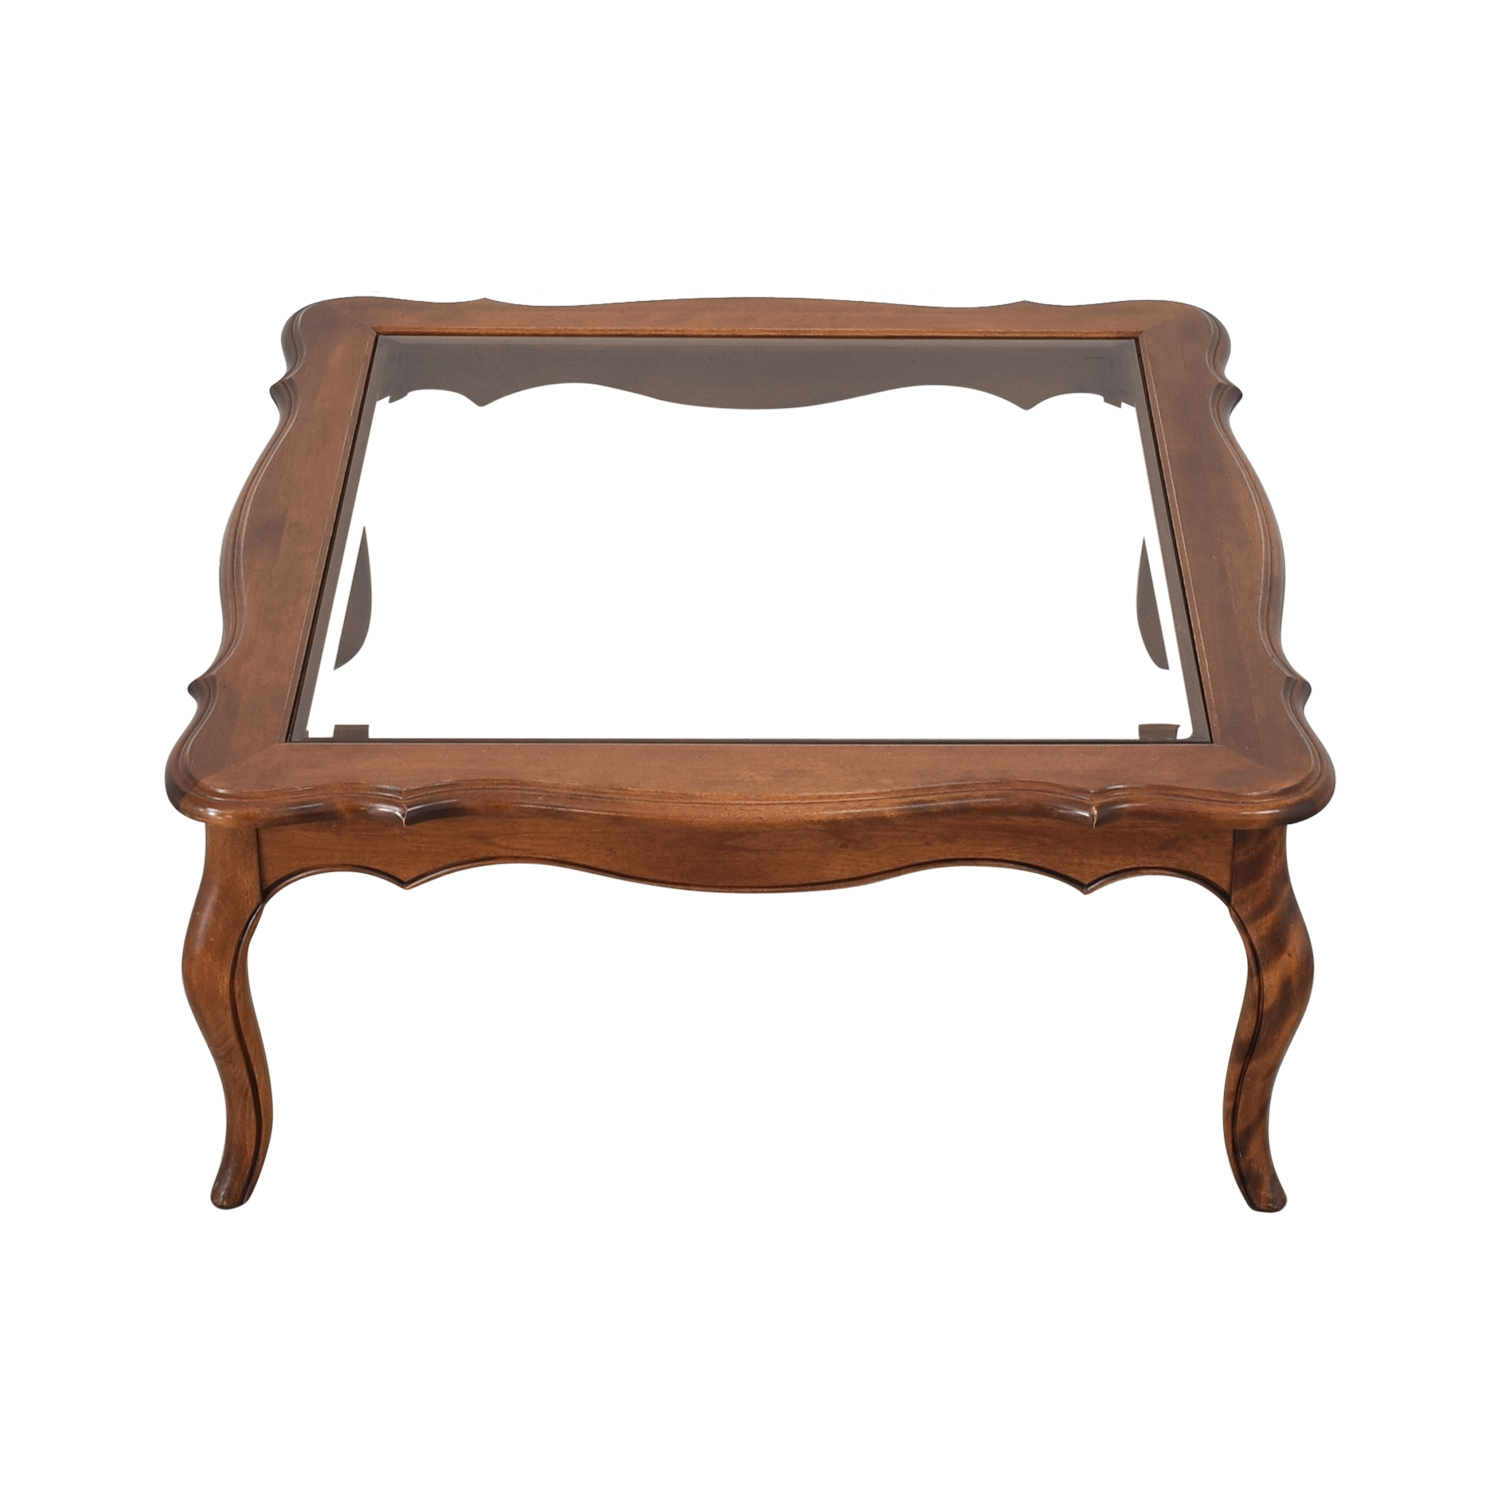 Ethan Allen Ethan Allen Country French Glass Top Coffee Table discount